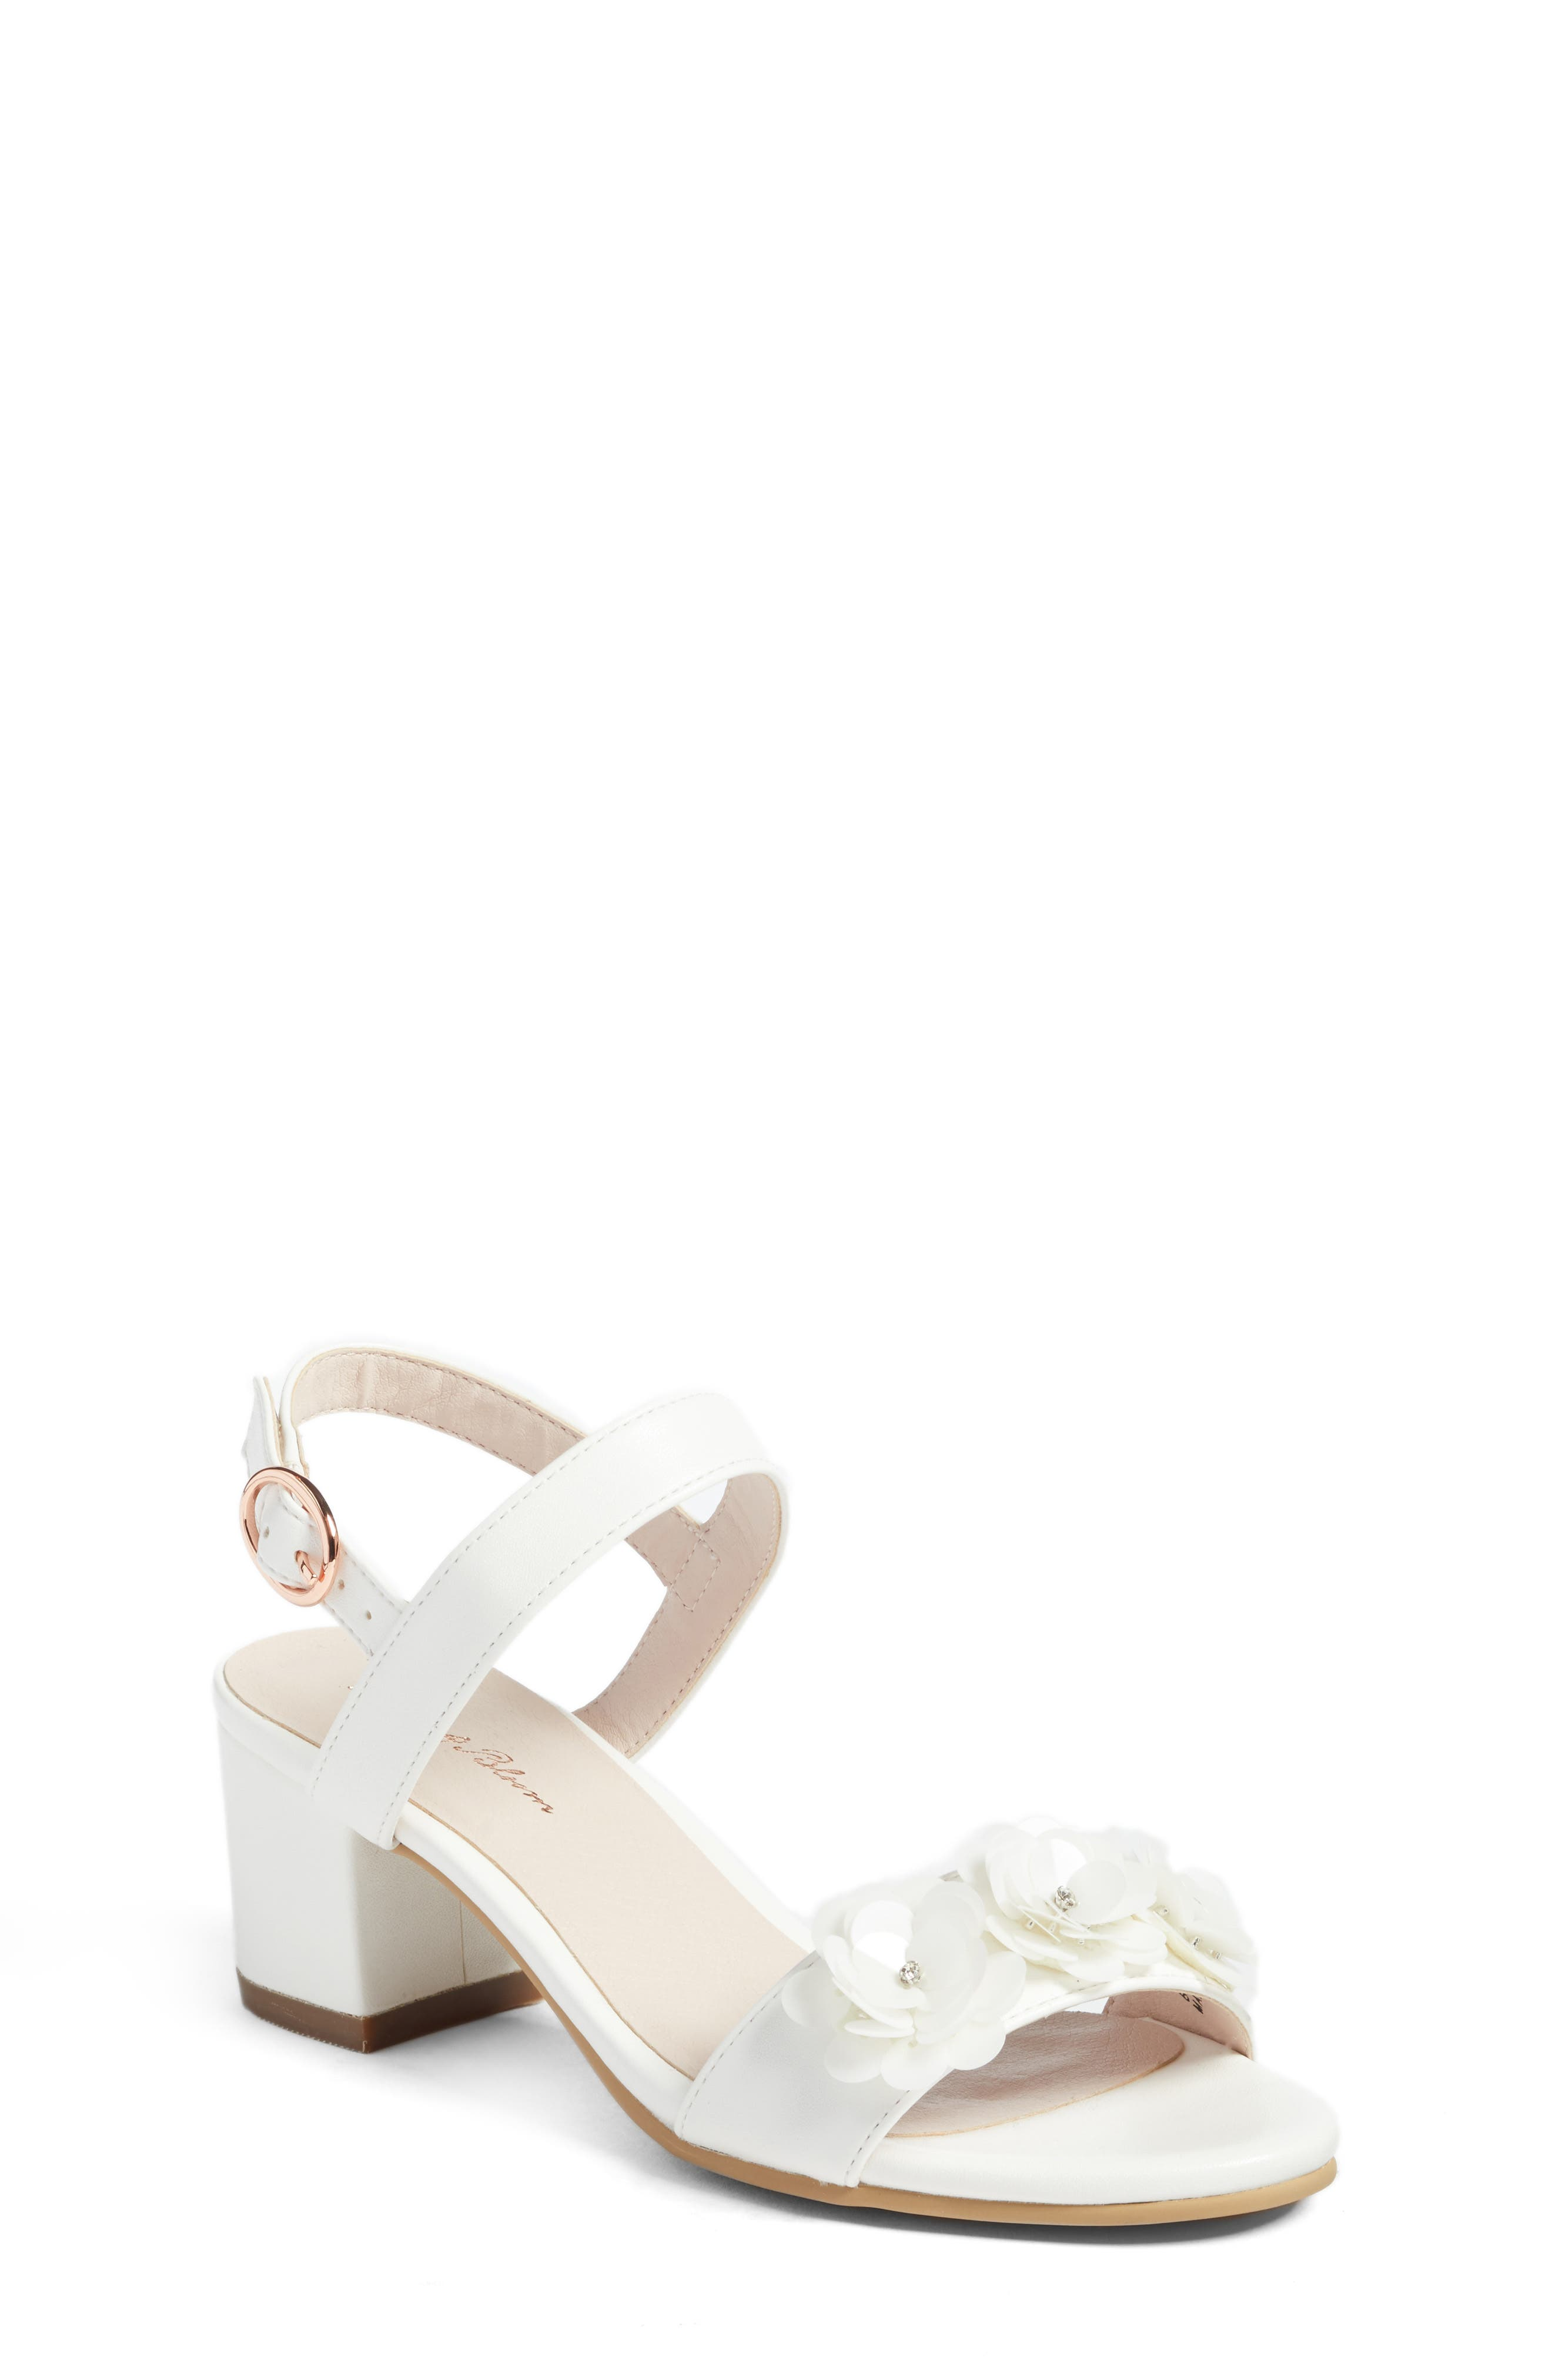 Dina Flowered Sandal,                             Main thumbnail 1, color,                             White Faux Leather